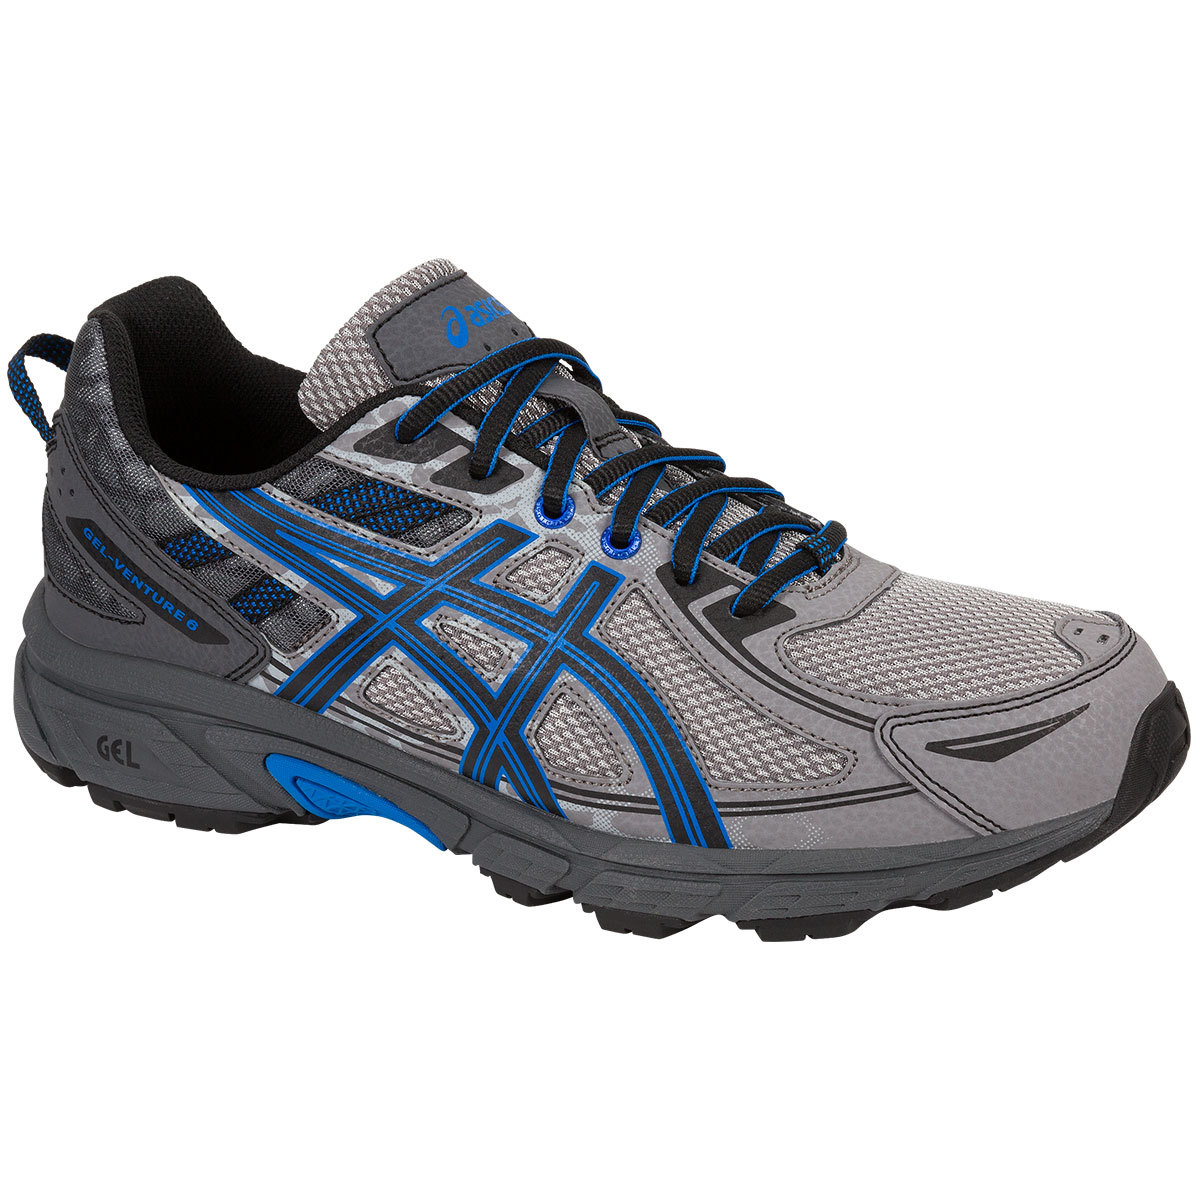 Asics Men's Gel-Venture 6 Running Shoes, Aluminum/black/blue